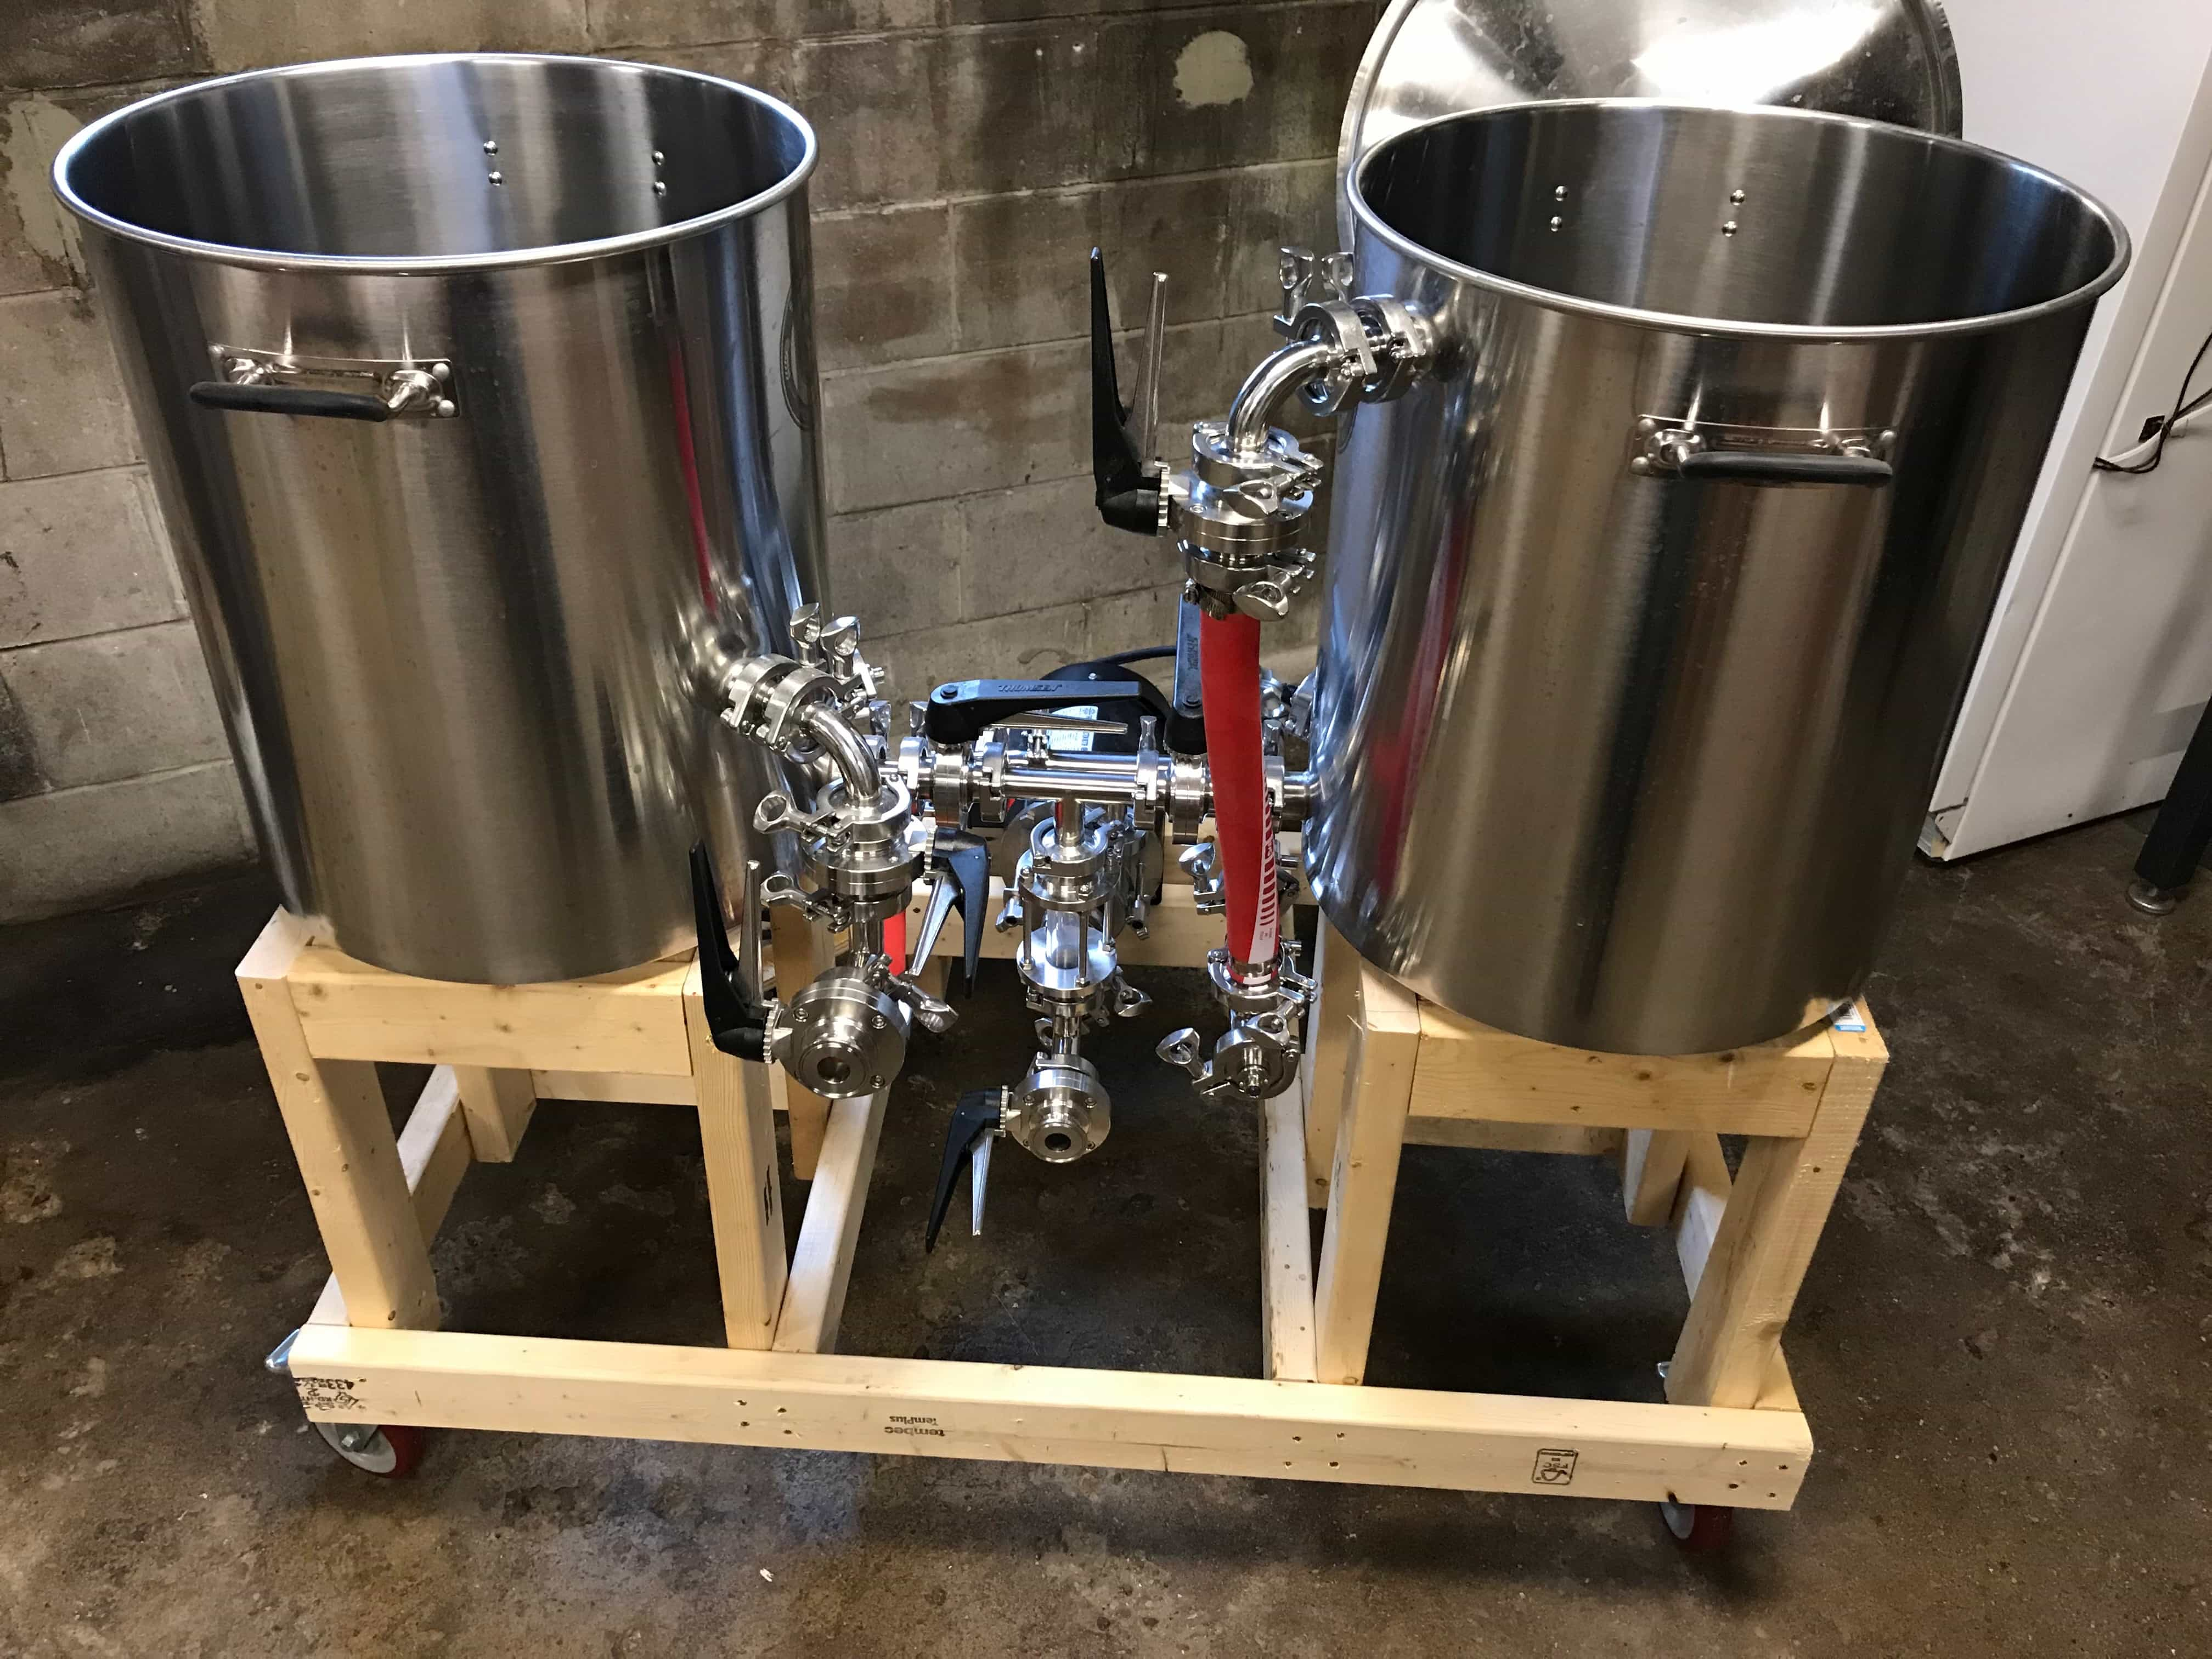 2018 brewery update – on brewing